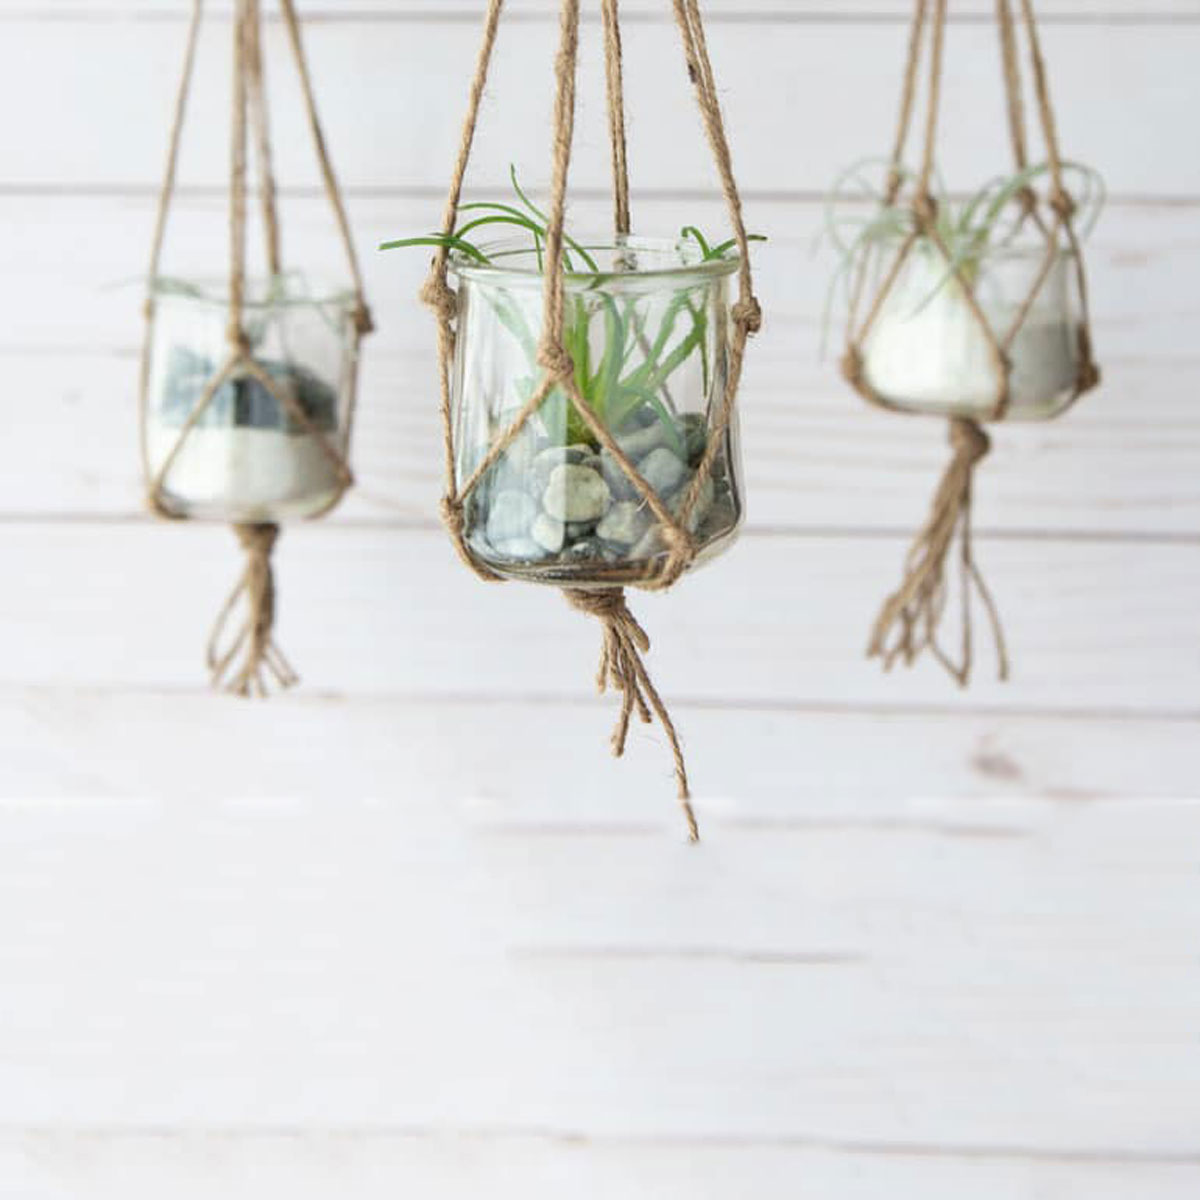 How to Make an Adorable Hanging Planter from a Yogurt Cup